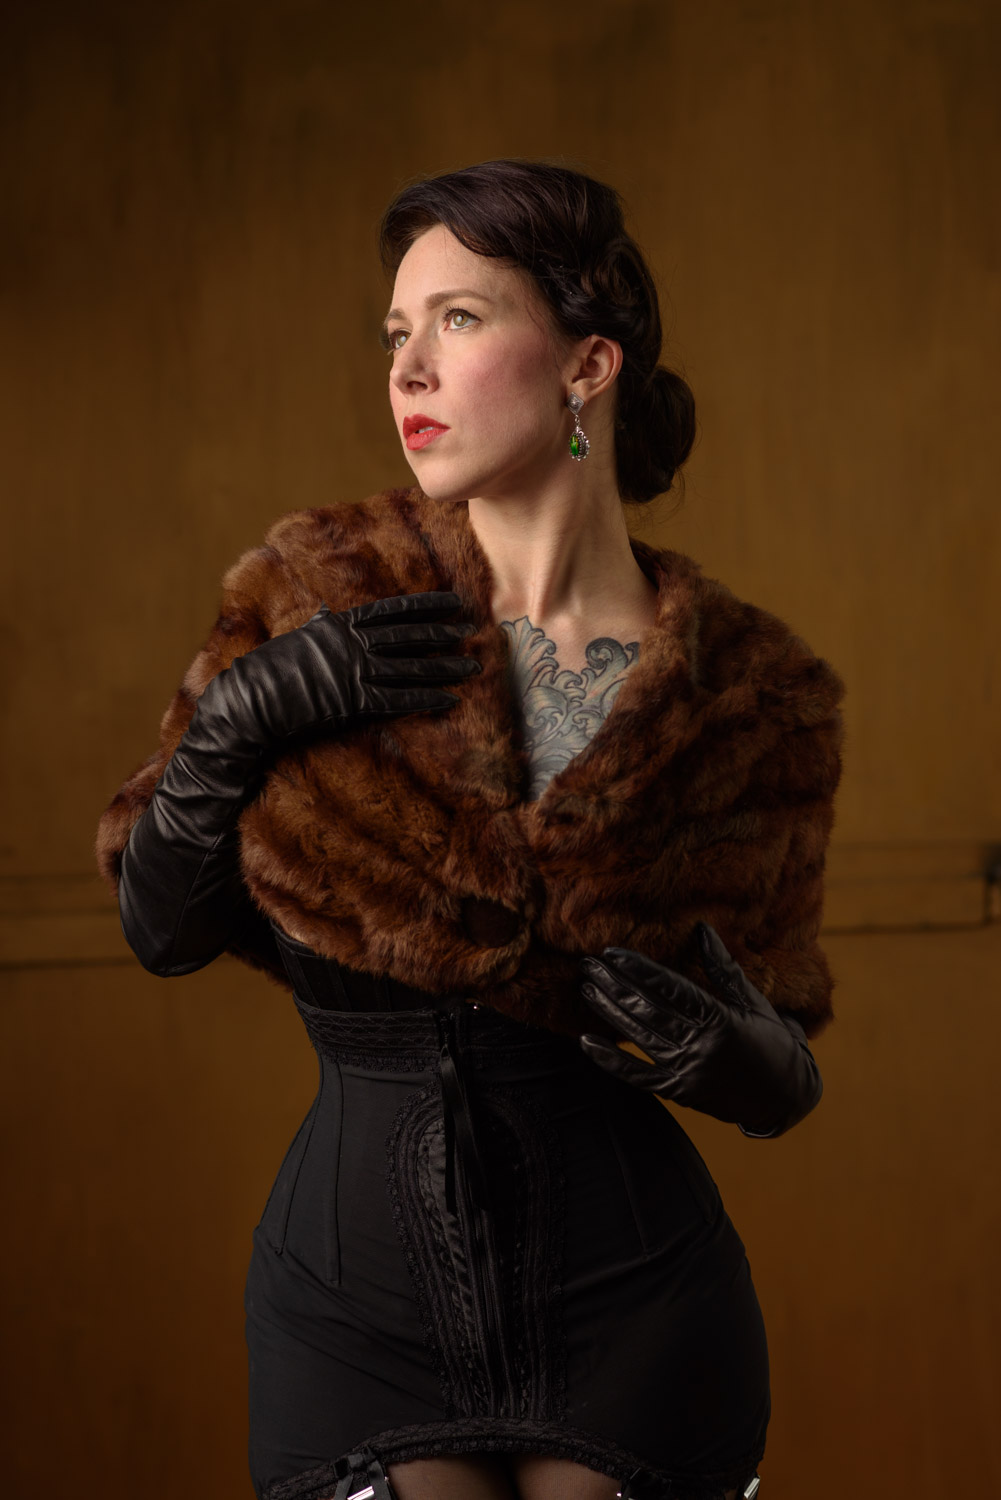 Portrait of woman wearing a fur shawl, long leather black gloves and an Edwardian styled corset in front of a copper colored backdrop.